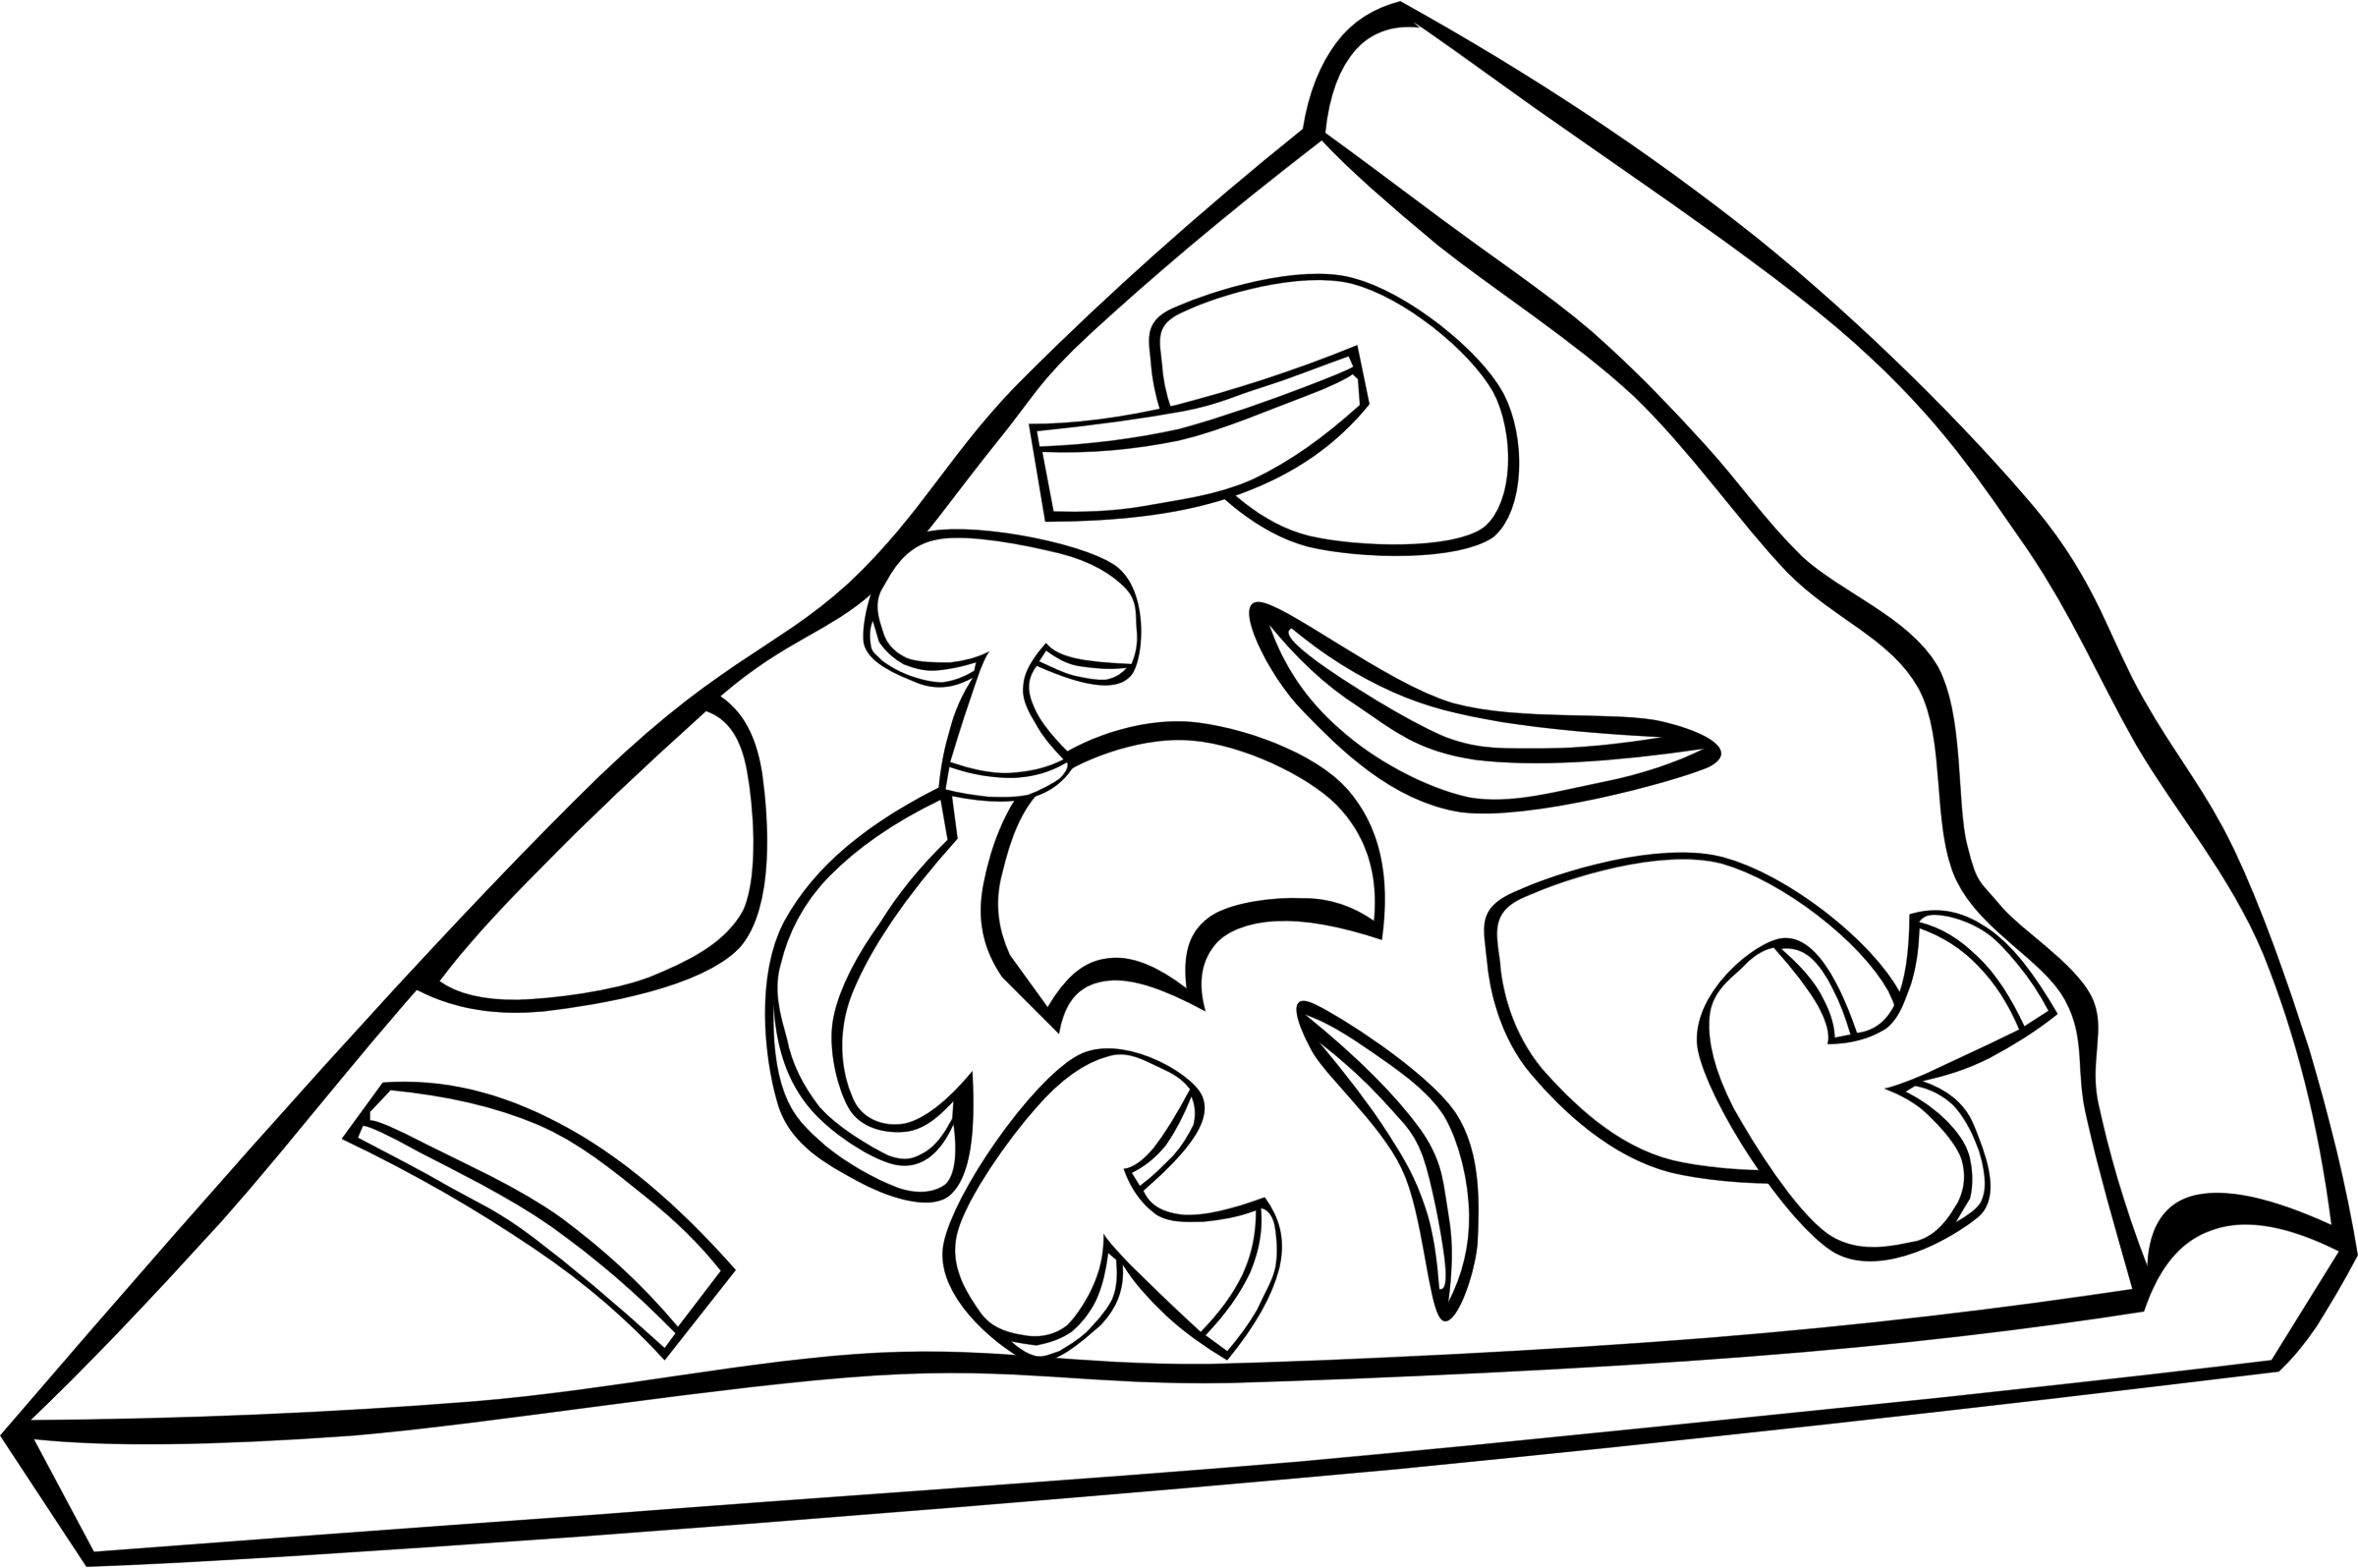 Food Clipart Black And White-food clipart black and white-12